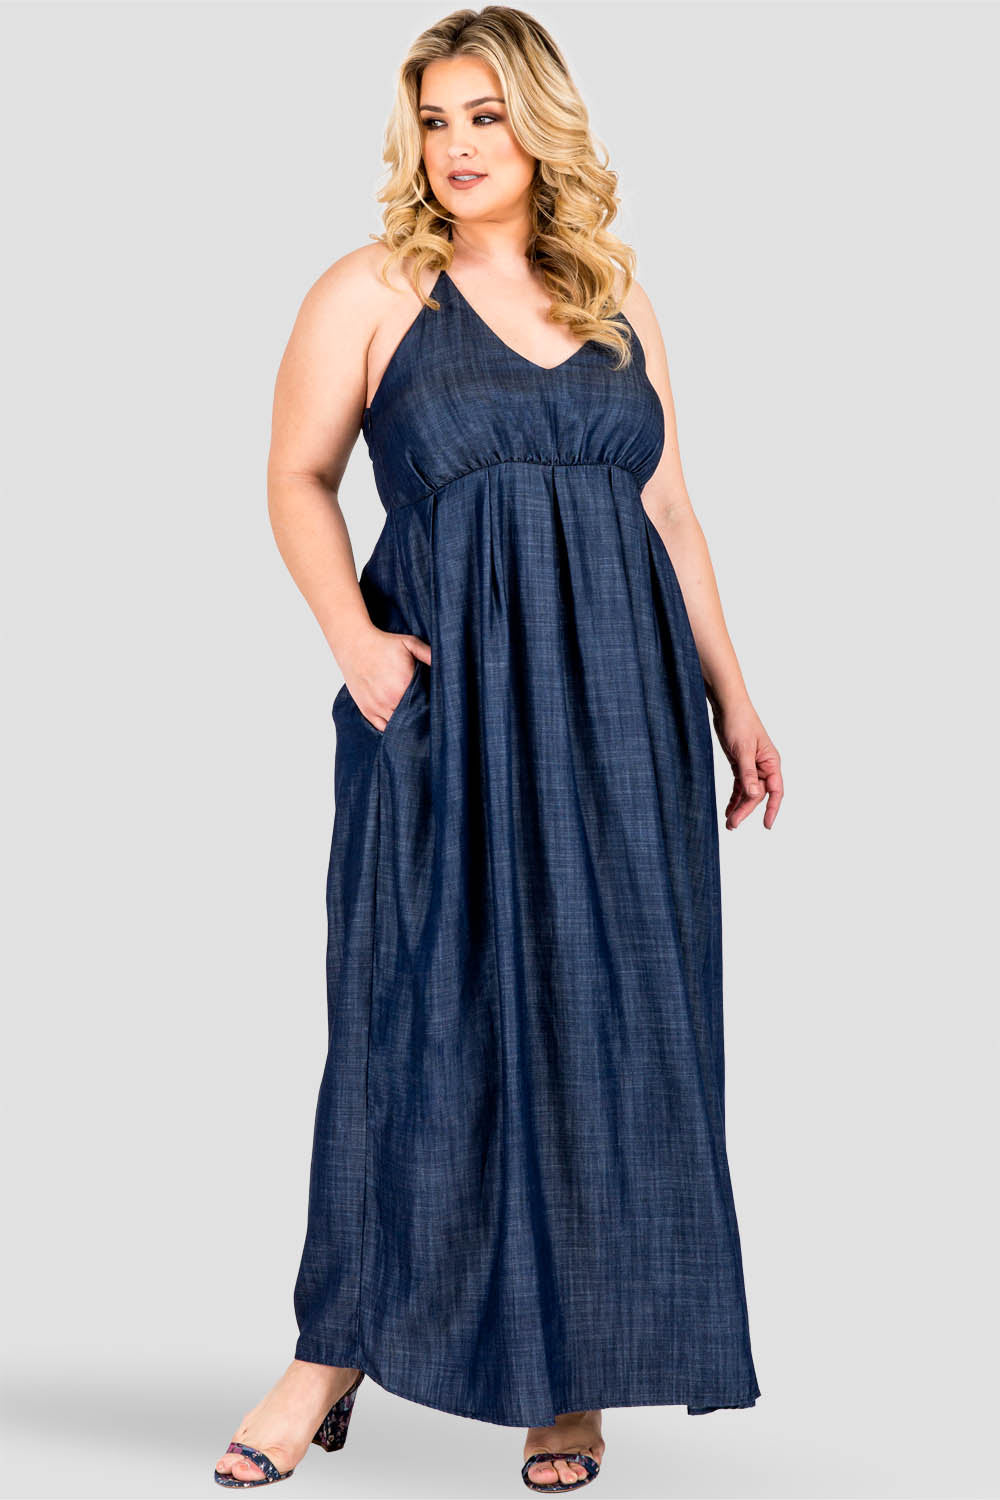 Plus Size Maui Halter Neck Indigo Tencel Denim Maxi Dress